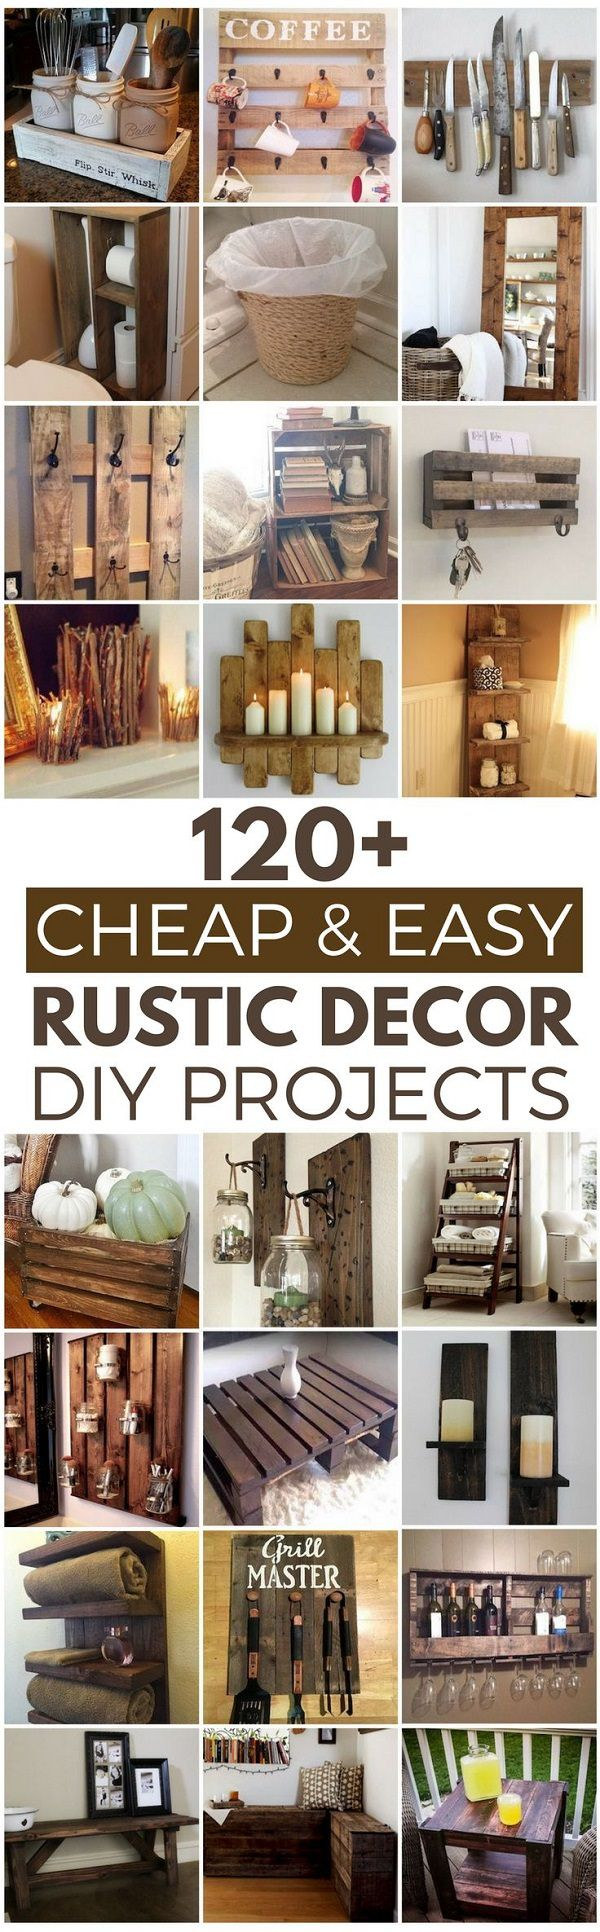 25 best ideas about rustic cottage on pinterest rustic cottage decorating welcome cottages Home decor hacks pinterest